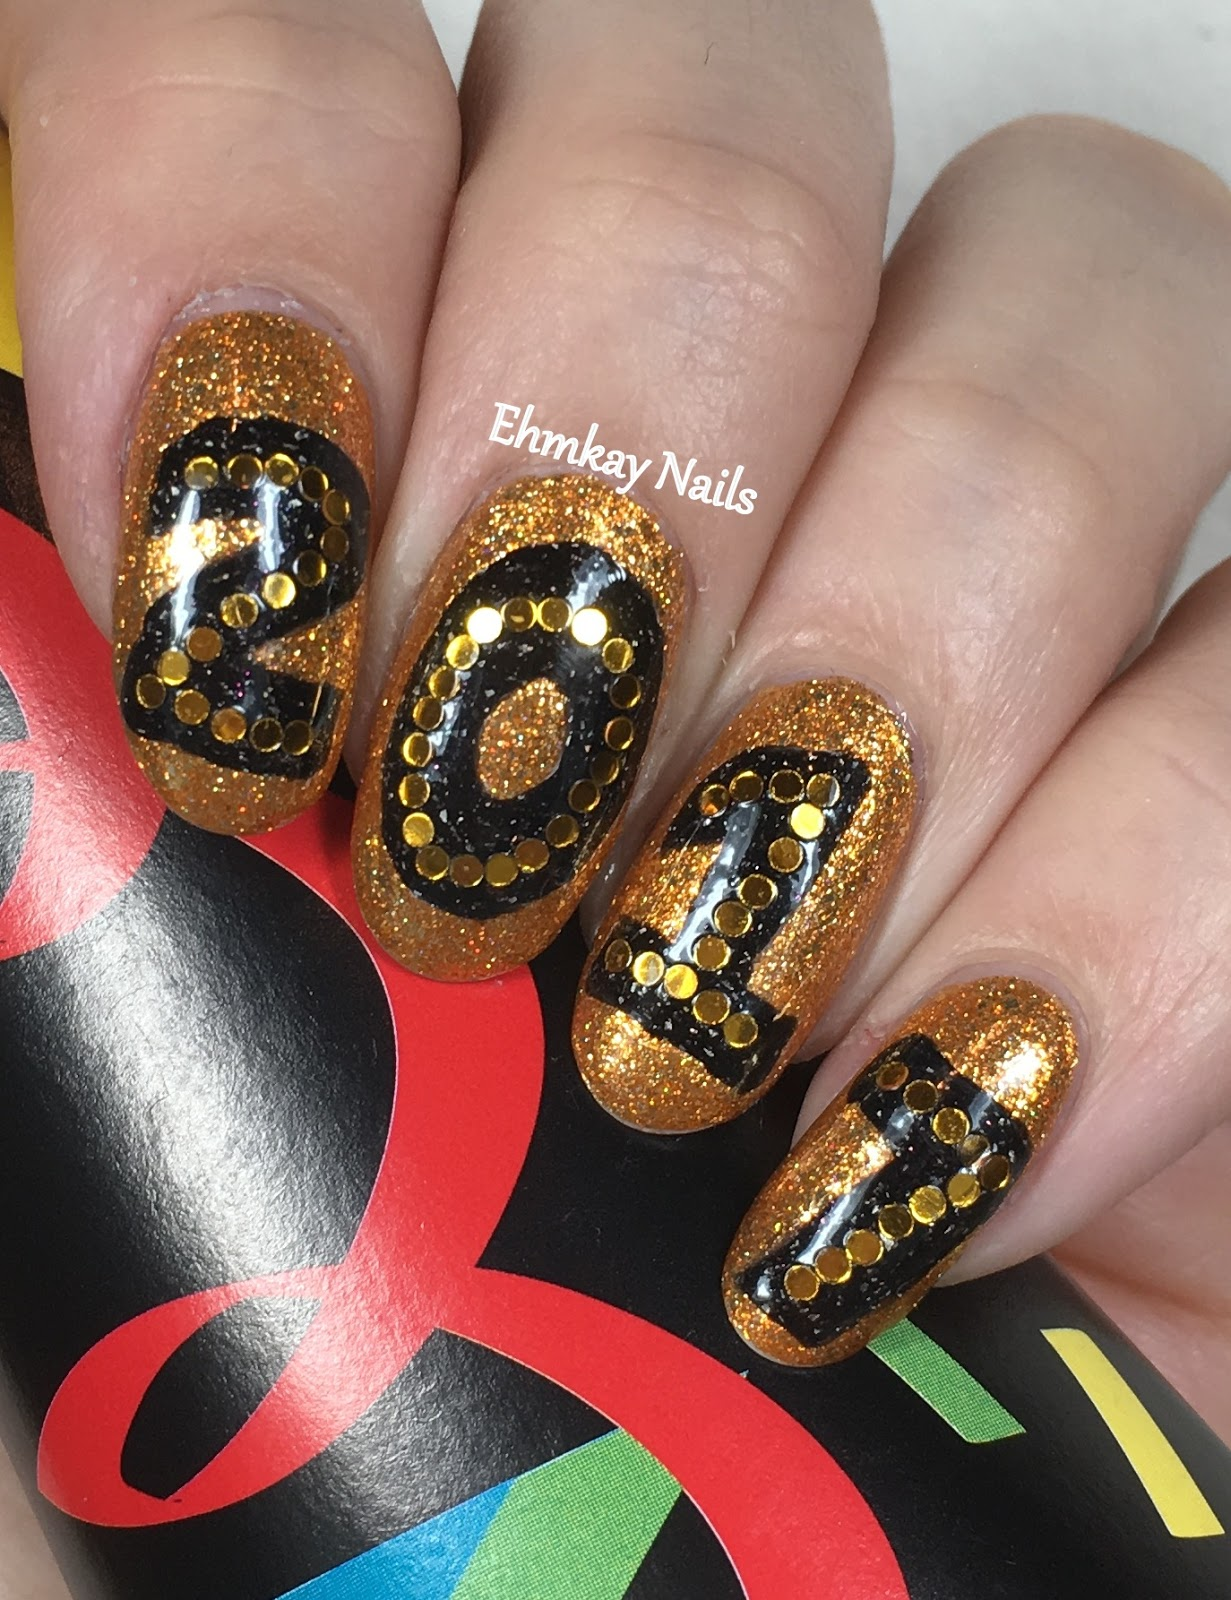 Ehmkay Nails New Year S Eve Nail Art With Kbshimmer Bling: Ehmkay Nails: Welcome To 2017 Nail Art